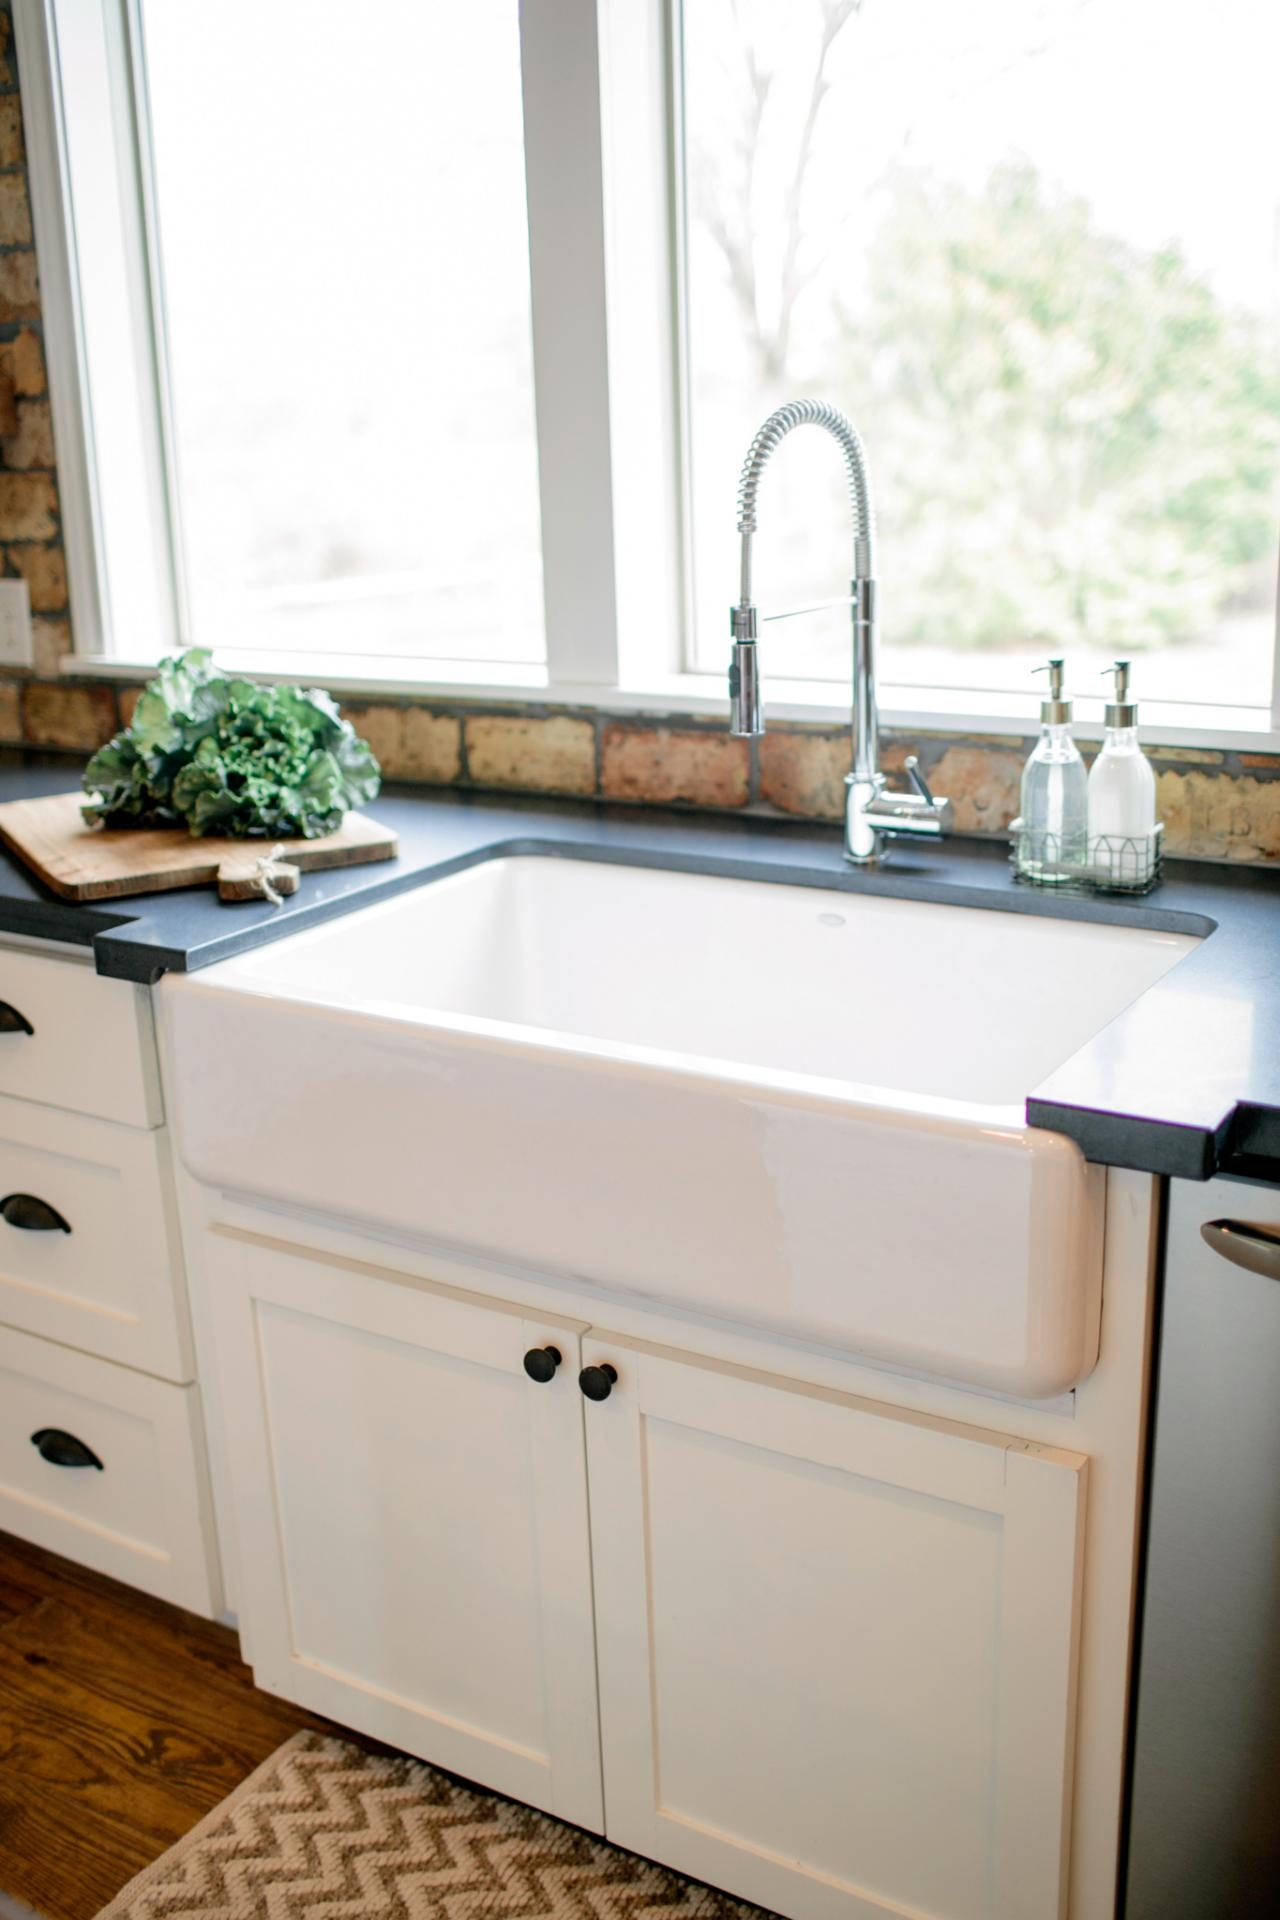 dining kitchen cool ways to install farmhouse sinks to your in sizing 1280 x 1920 jpeg